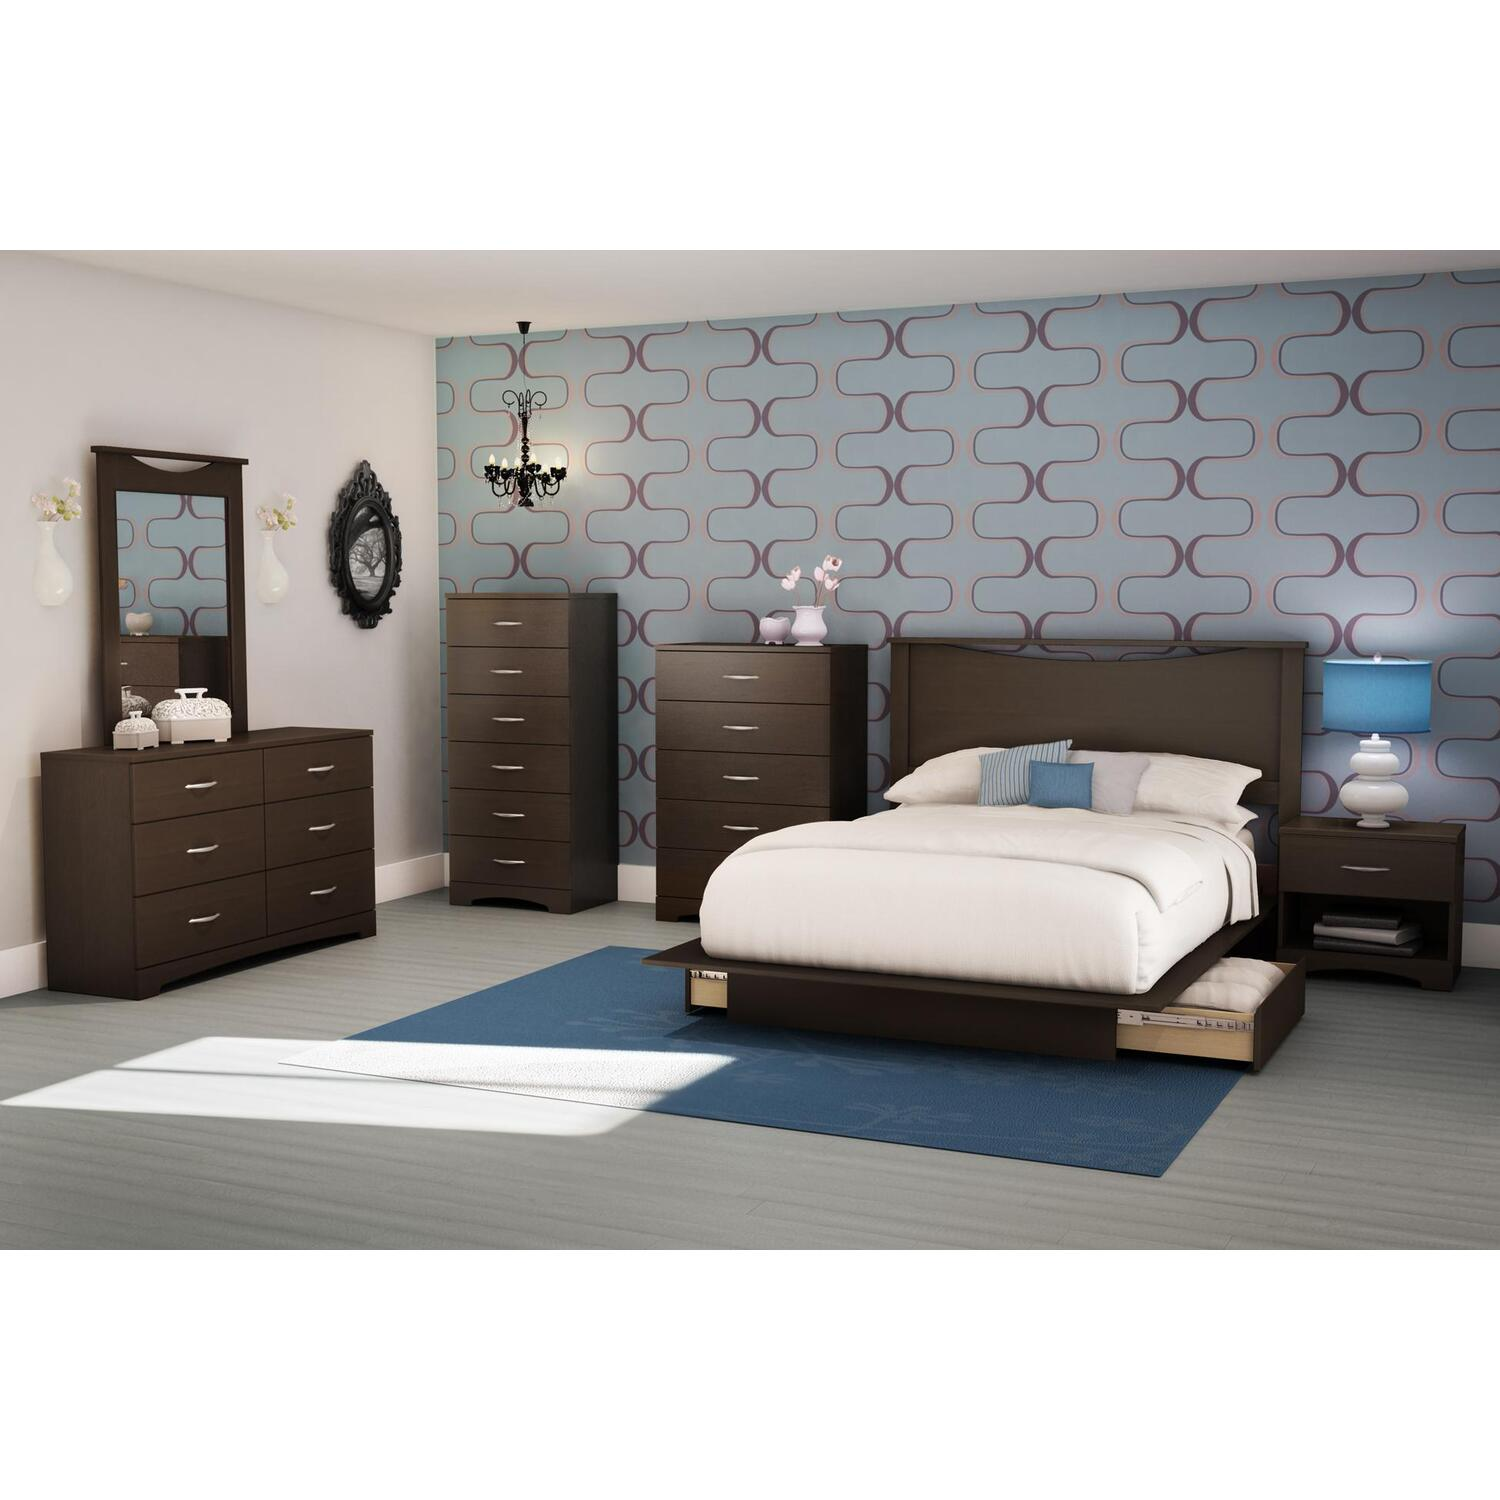 back bay full/queen platform 7 piece bedroom set | ojcommerce